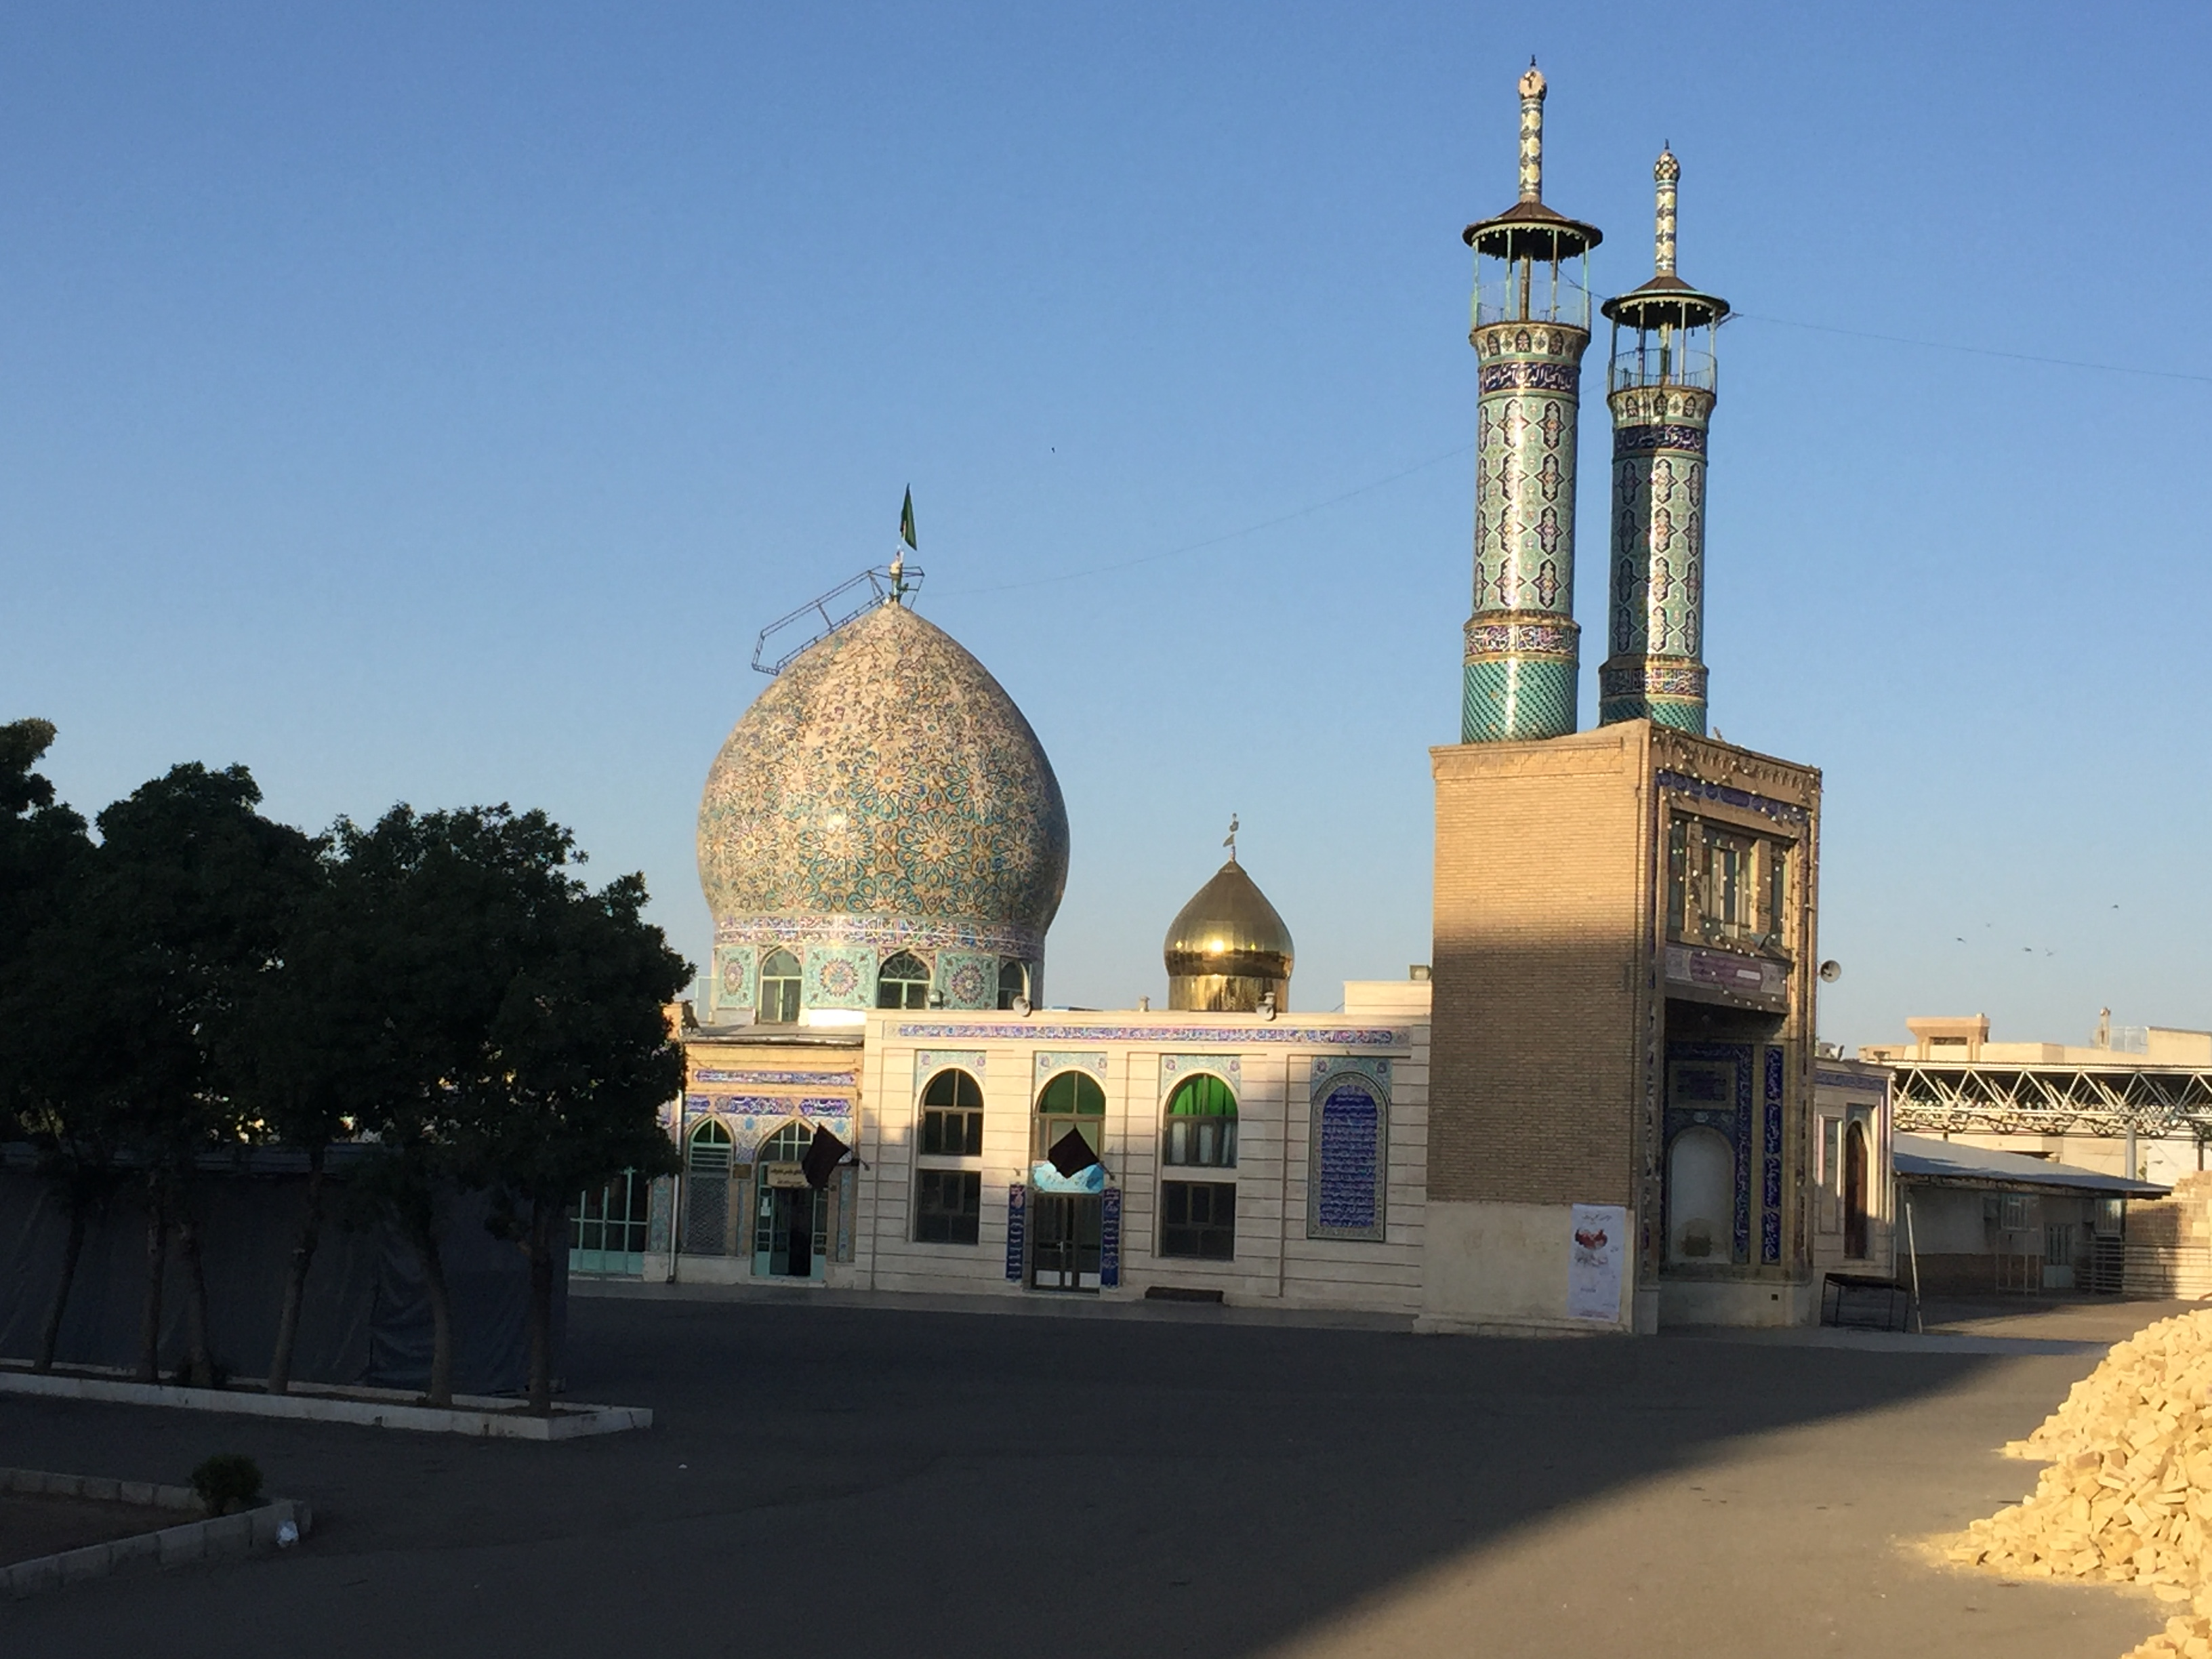 Seyid Ibrahim mosque (in better light than yesterday's photo)